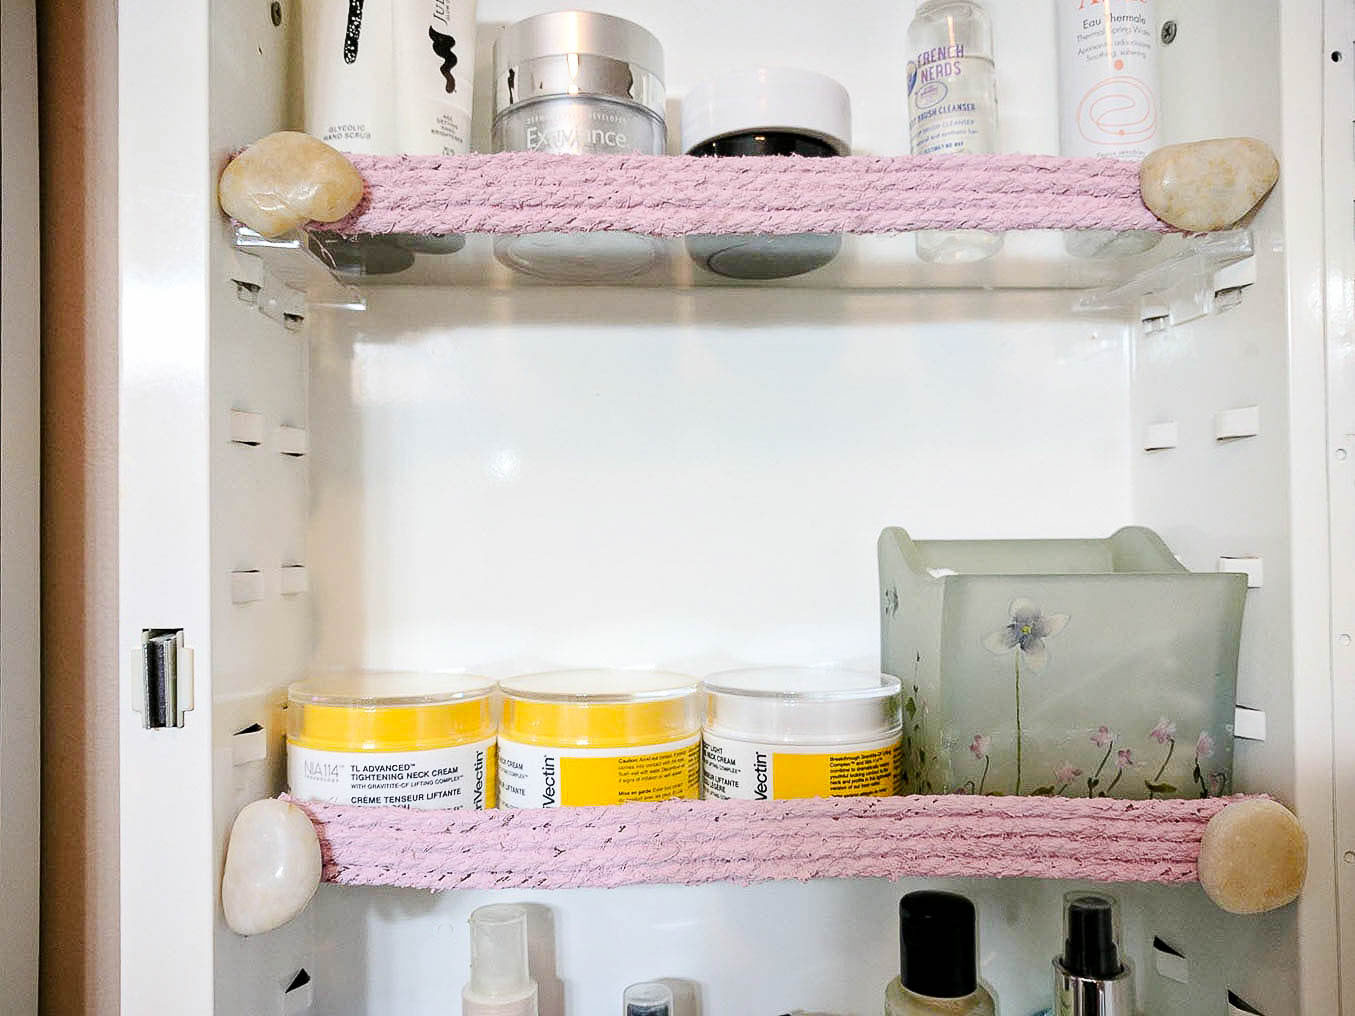 How To Stop Your Medicine Cabinet Items From Falling Out